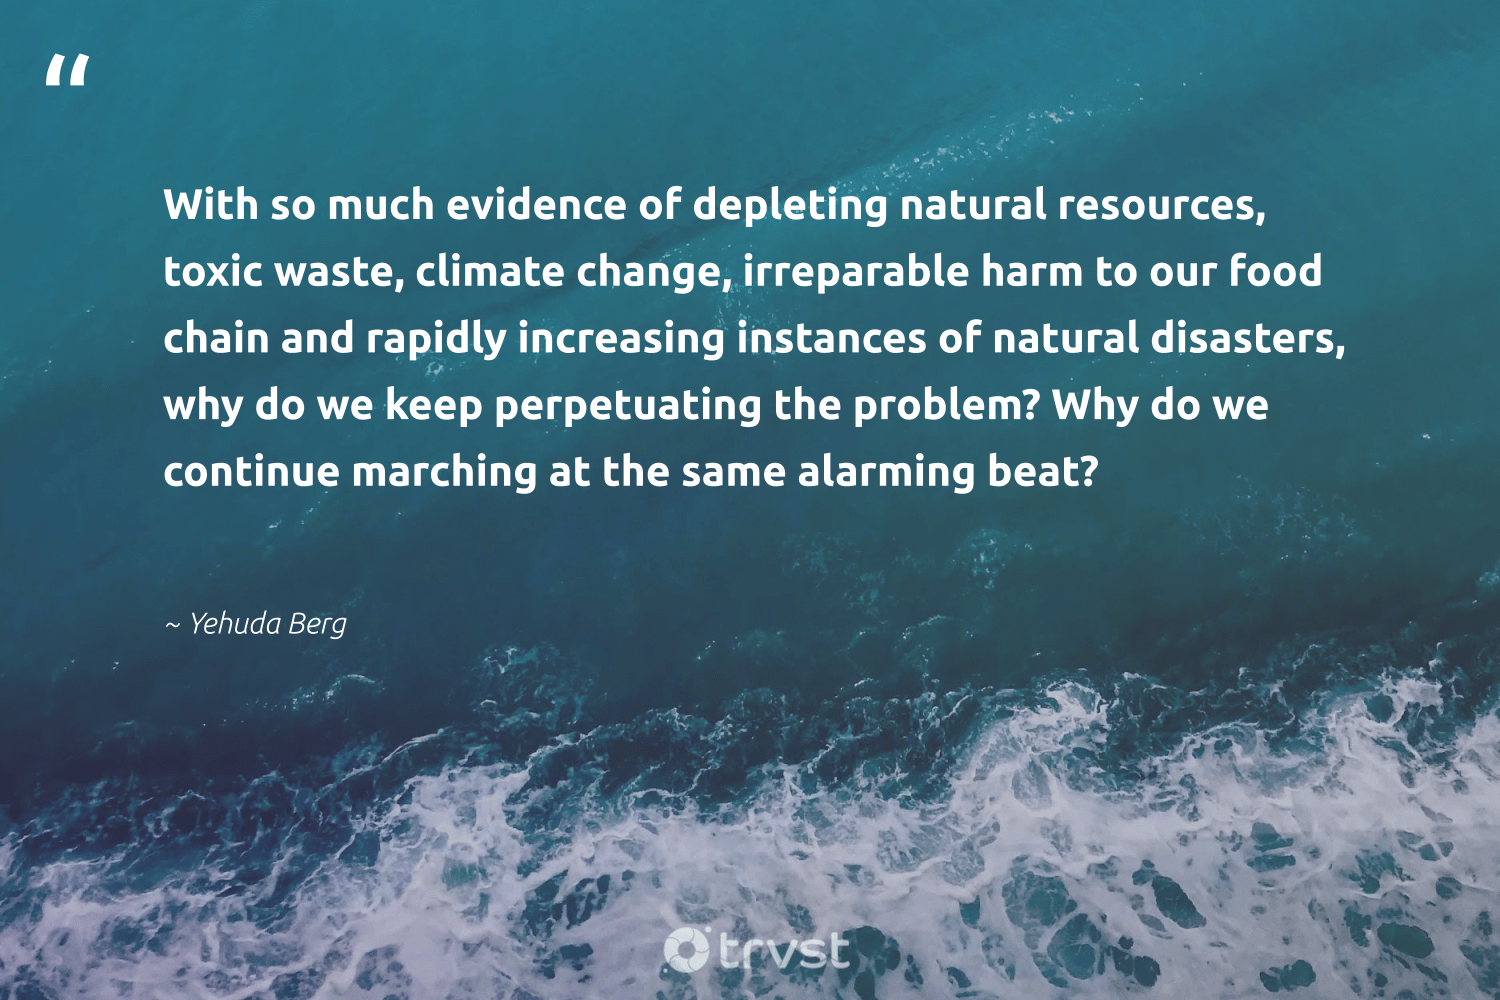 """""""With so much evidence of depleting natural resources, toxic waste, climate change, irreparable harm to our food chain and rapidly increasing instances of natural disasters, why do we keep perpetuating the problem? Why do we continue marching at the same alarming beat?""""  - Yehuda Berg #trvst #quotes #waste #climatechange #toxic #natural #climate #food #co2 #spill #savetheplanet #actonclimate"""